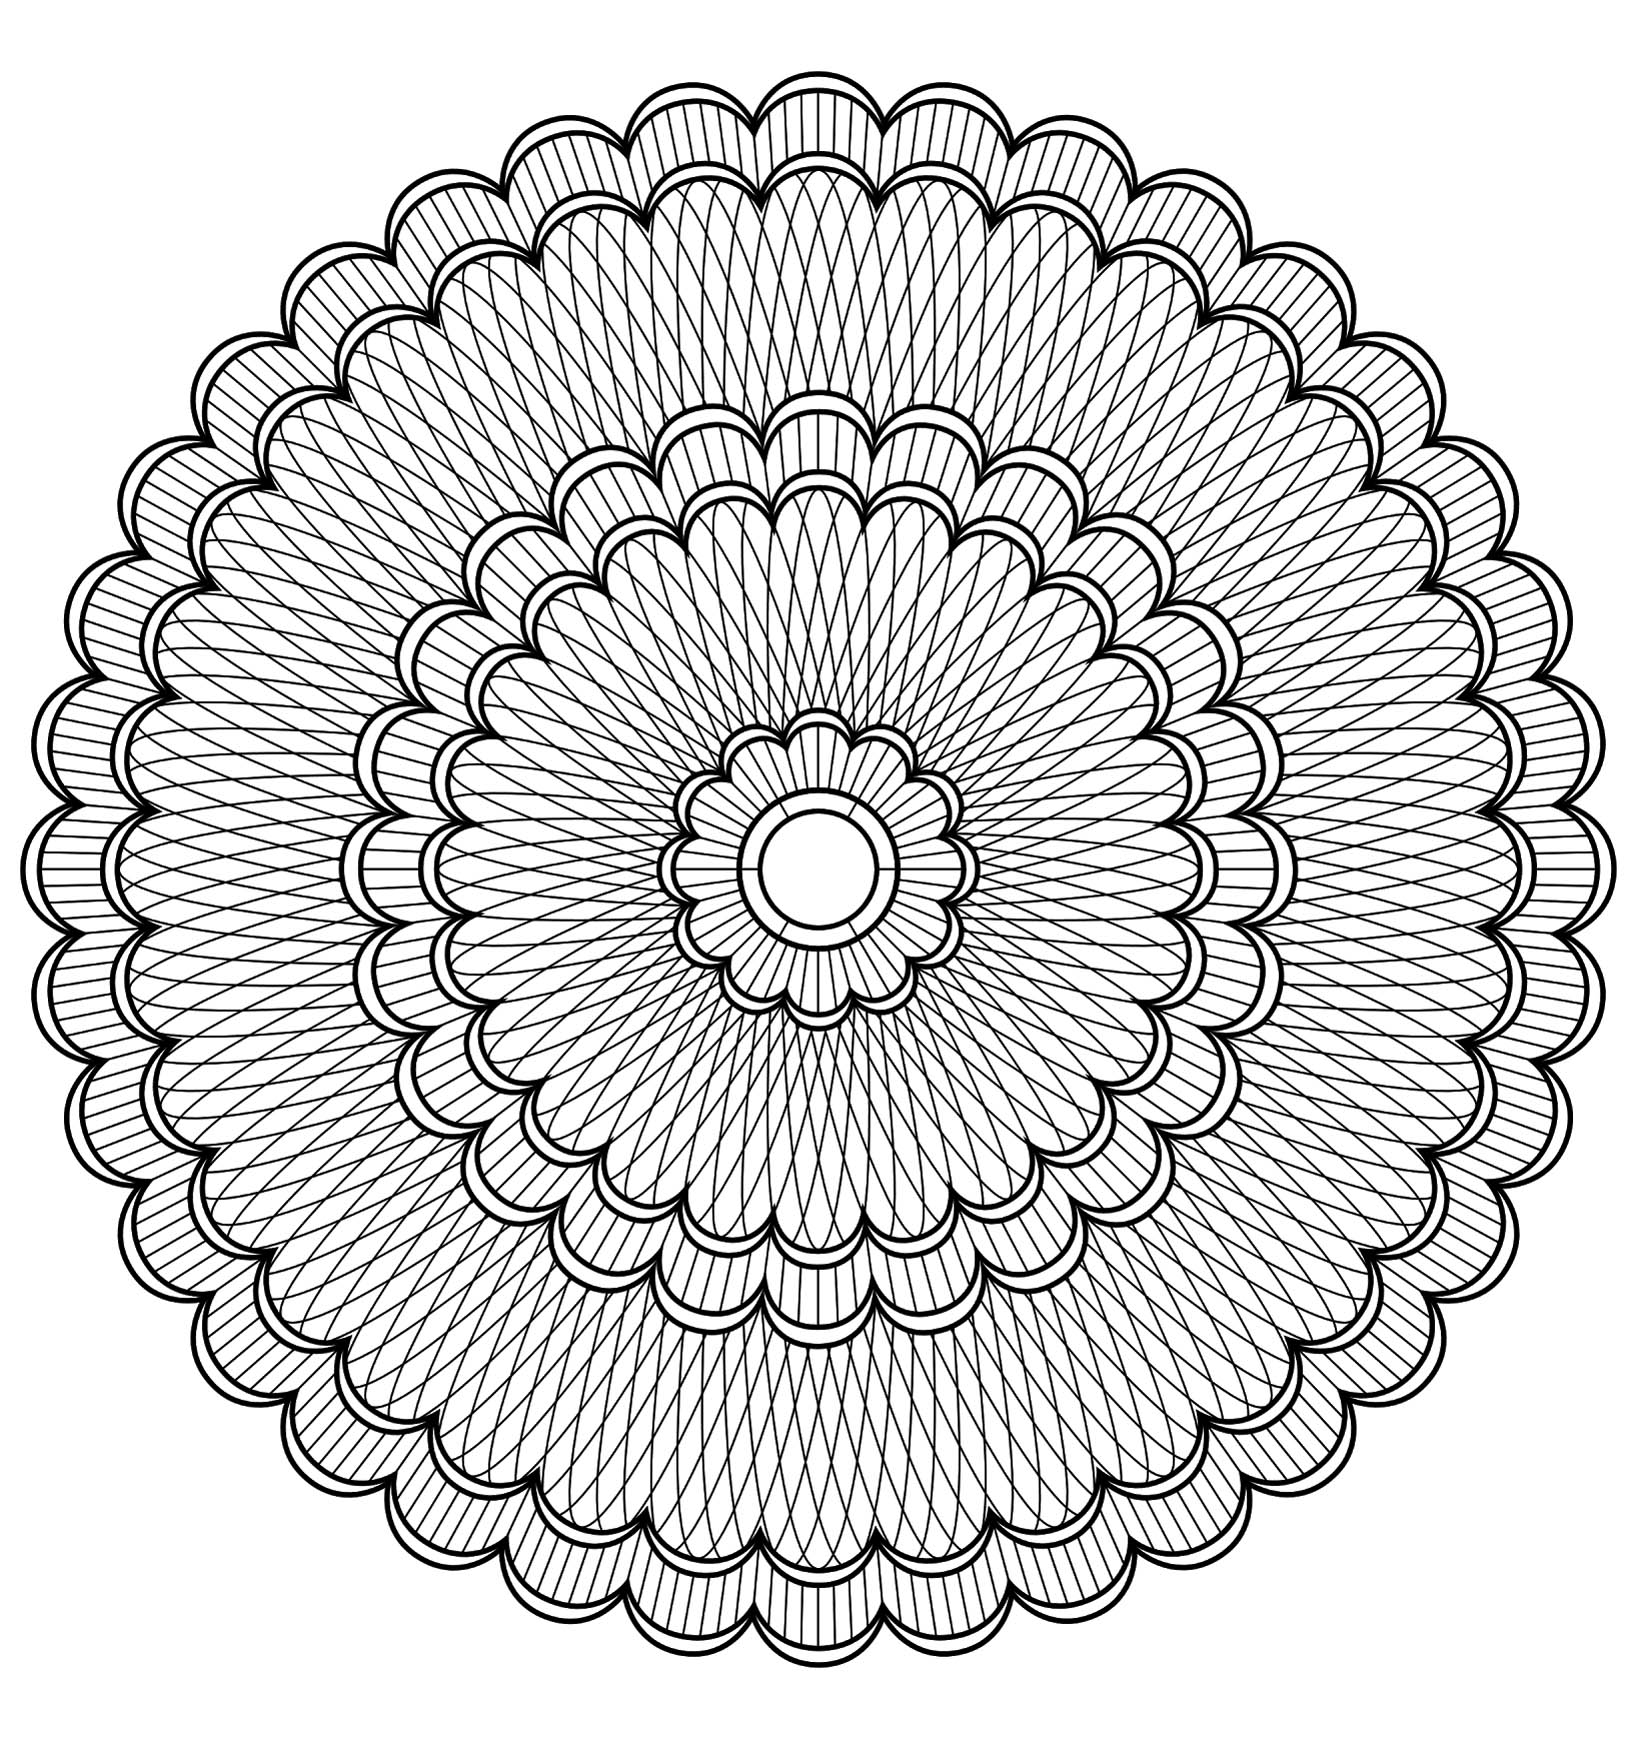 Anti Stress Kleurplaten Dieren Mandala To Color Difficult 19 Difficult Mandalas For